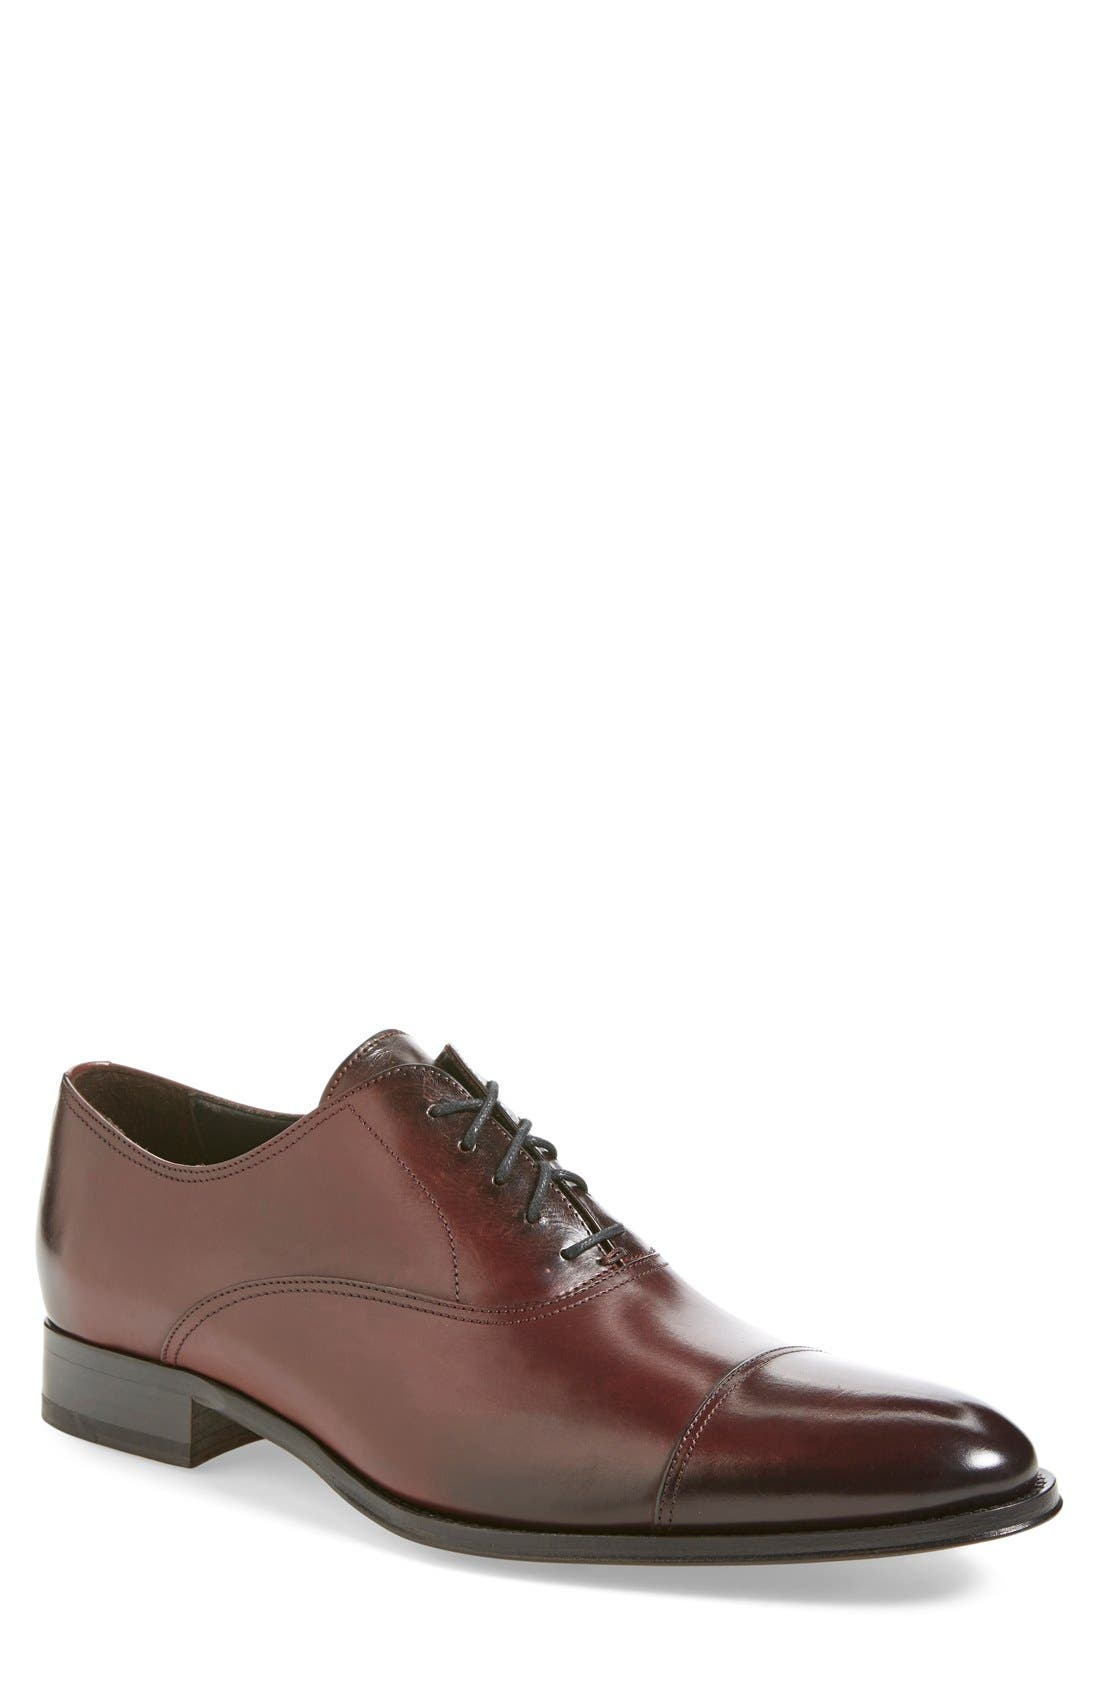 To Boot New York Brandon Cap Toe Oxford, Burgundy